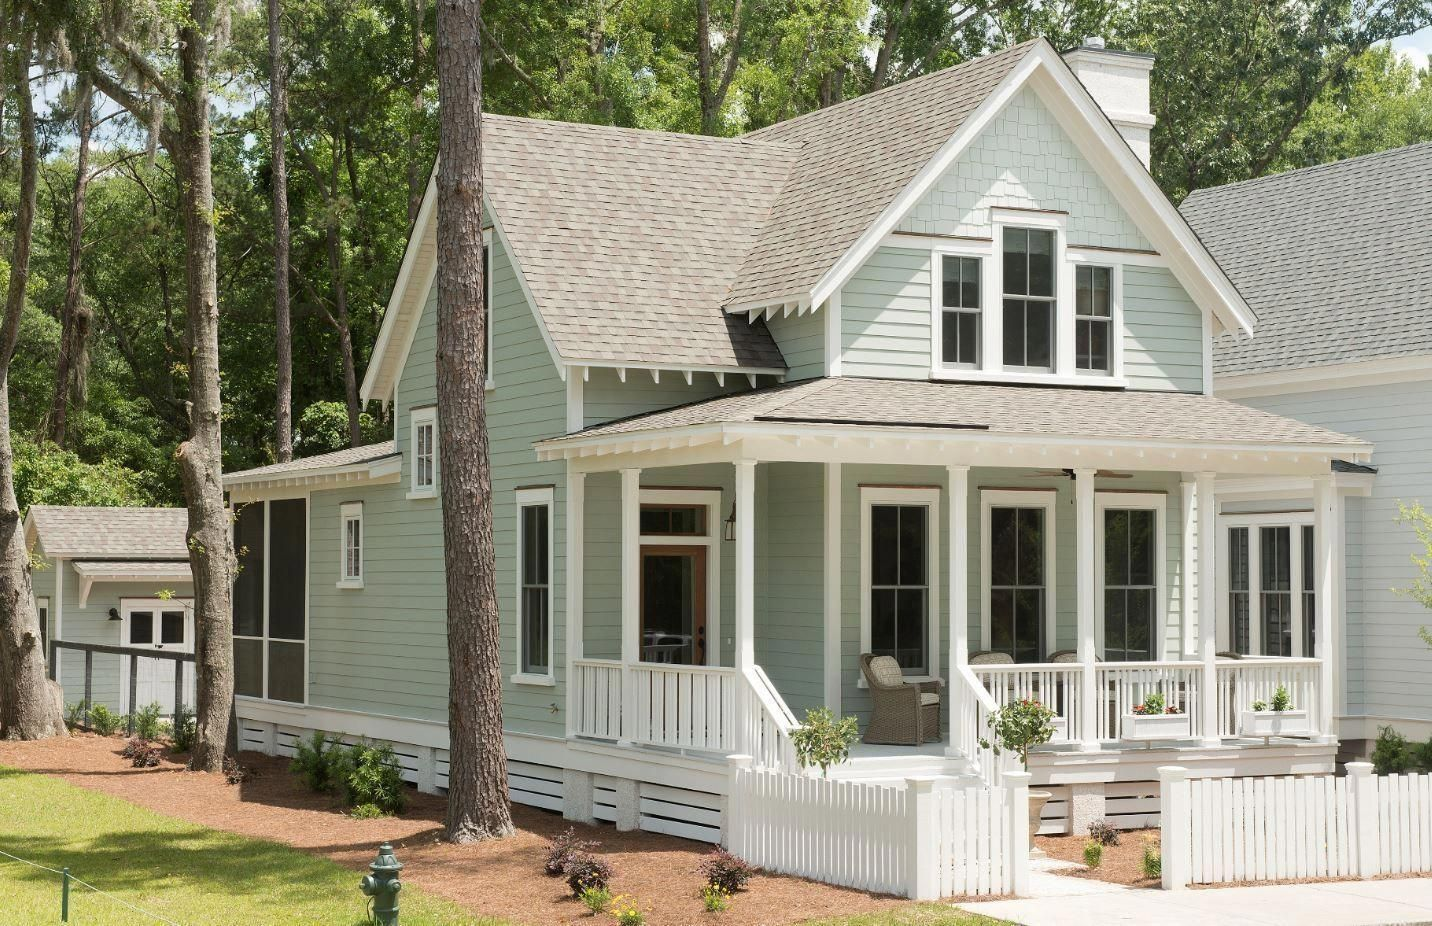 Pay A Visit To Our Niche Site For Even More Pertaining To This Delightful Photo Beachcottage Small Cottage Homes Small Cottage House Plans Cottage House Plans